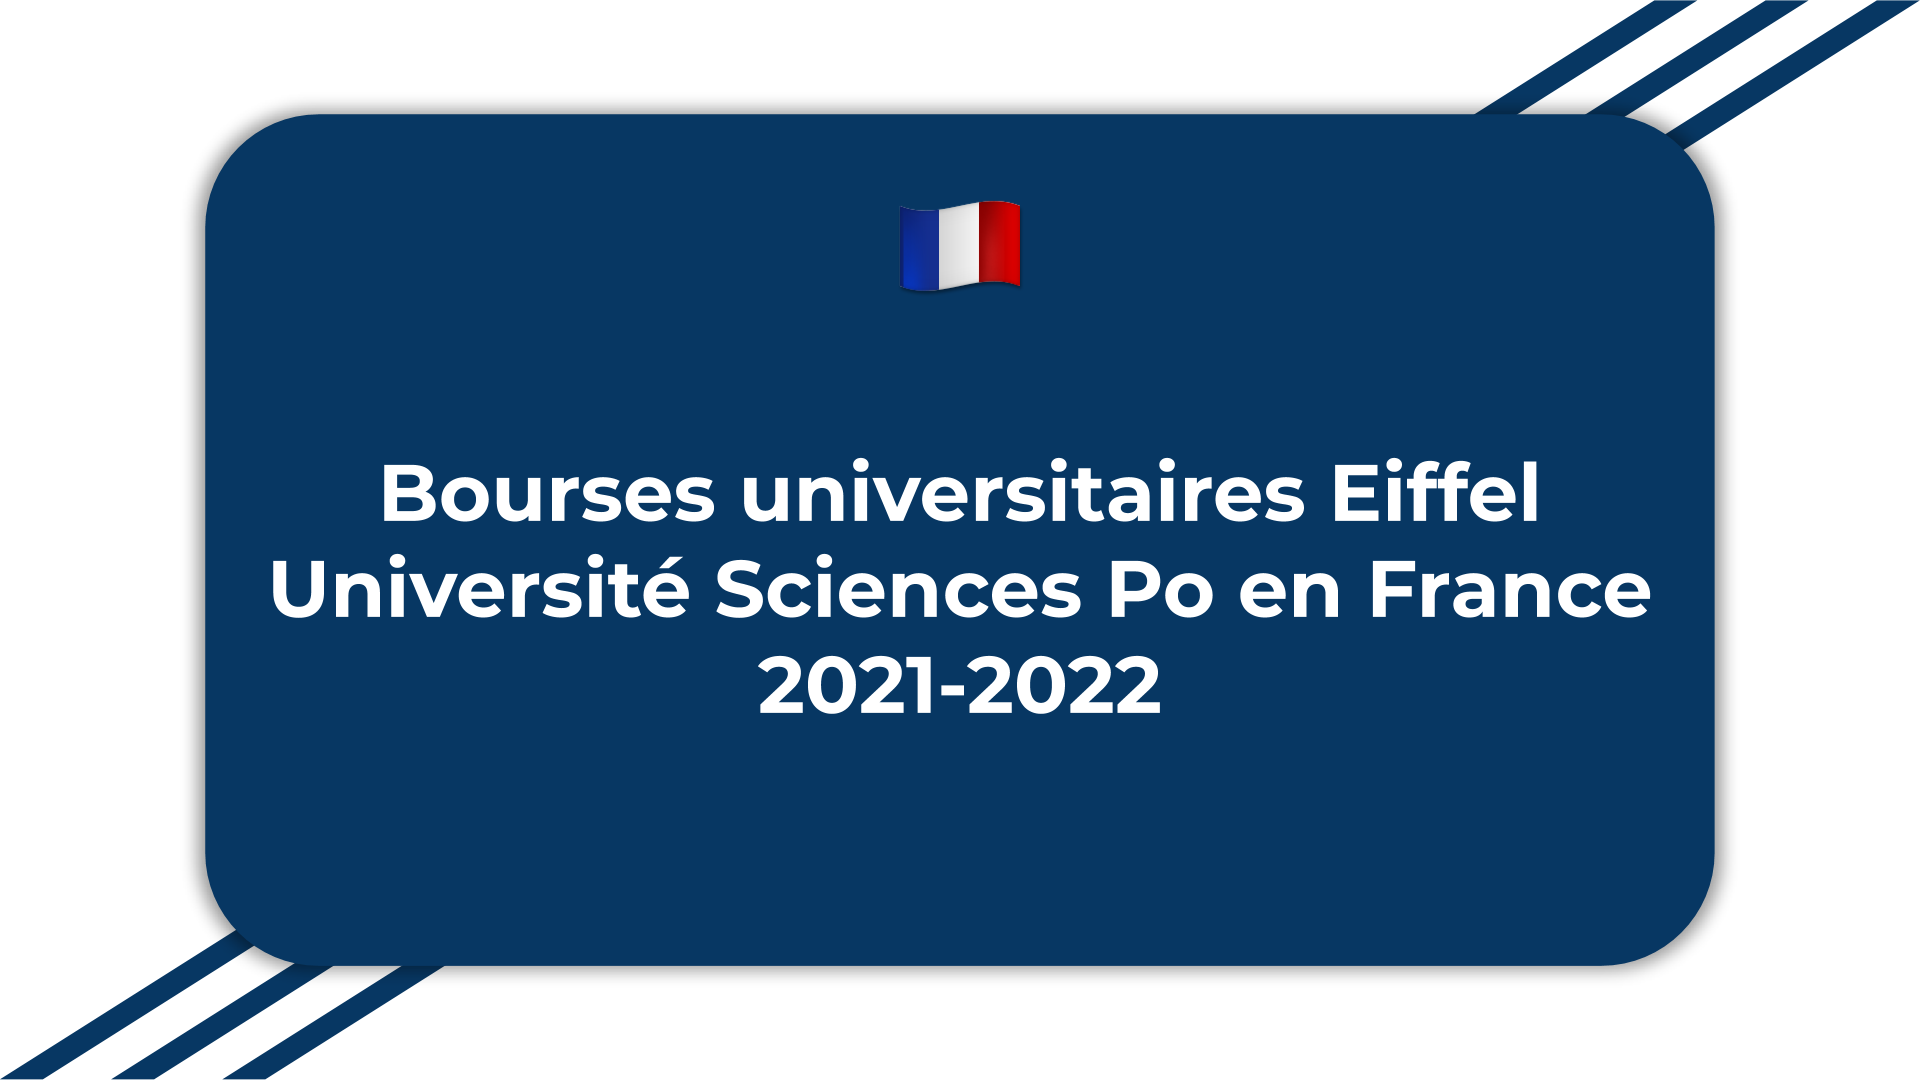 Bourses universitaires Eiffel Université Sciences Po en France 2021